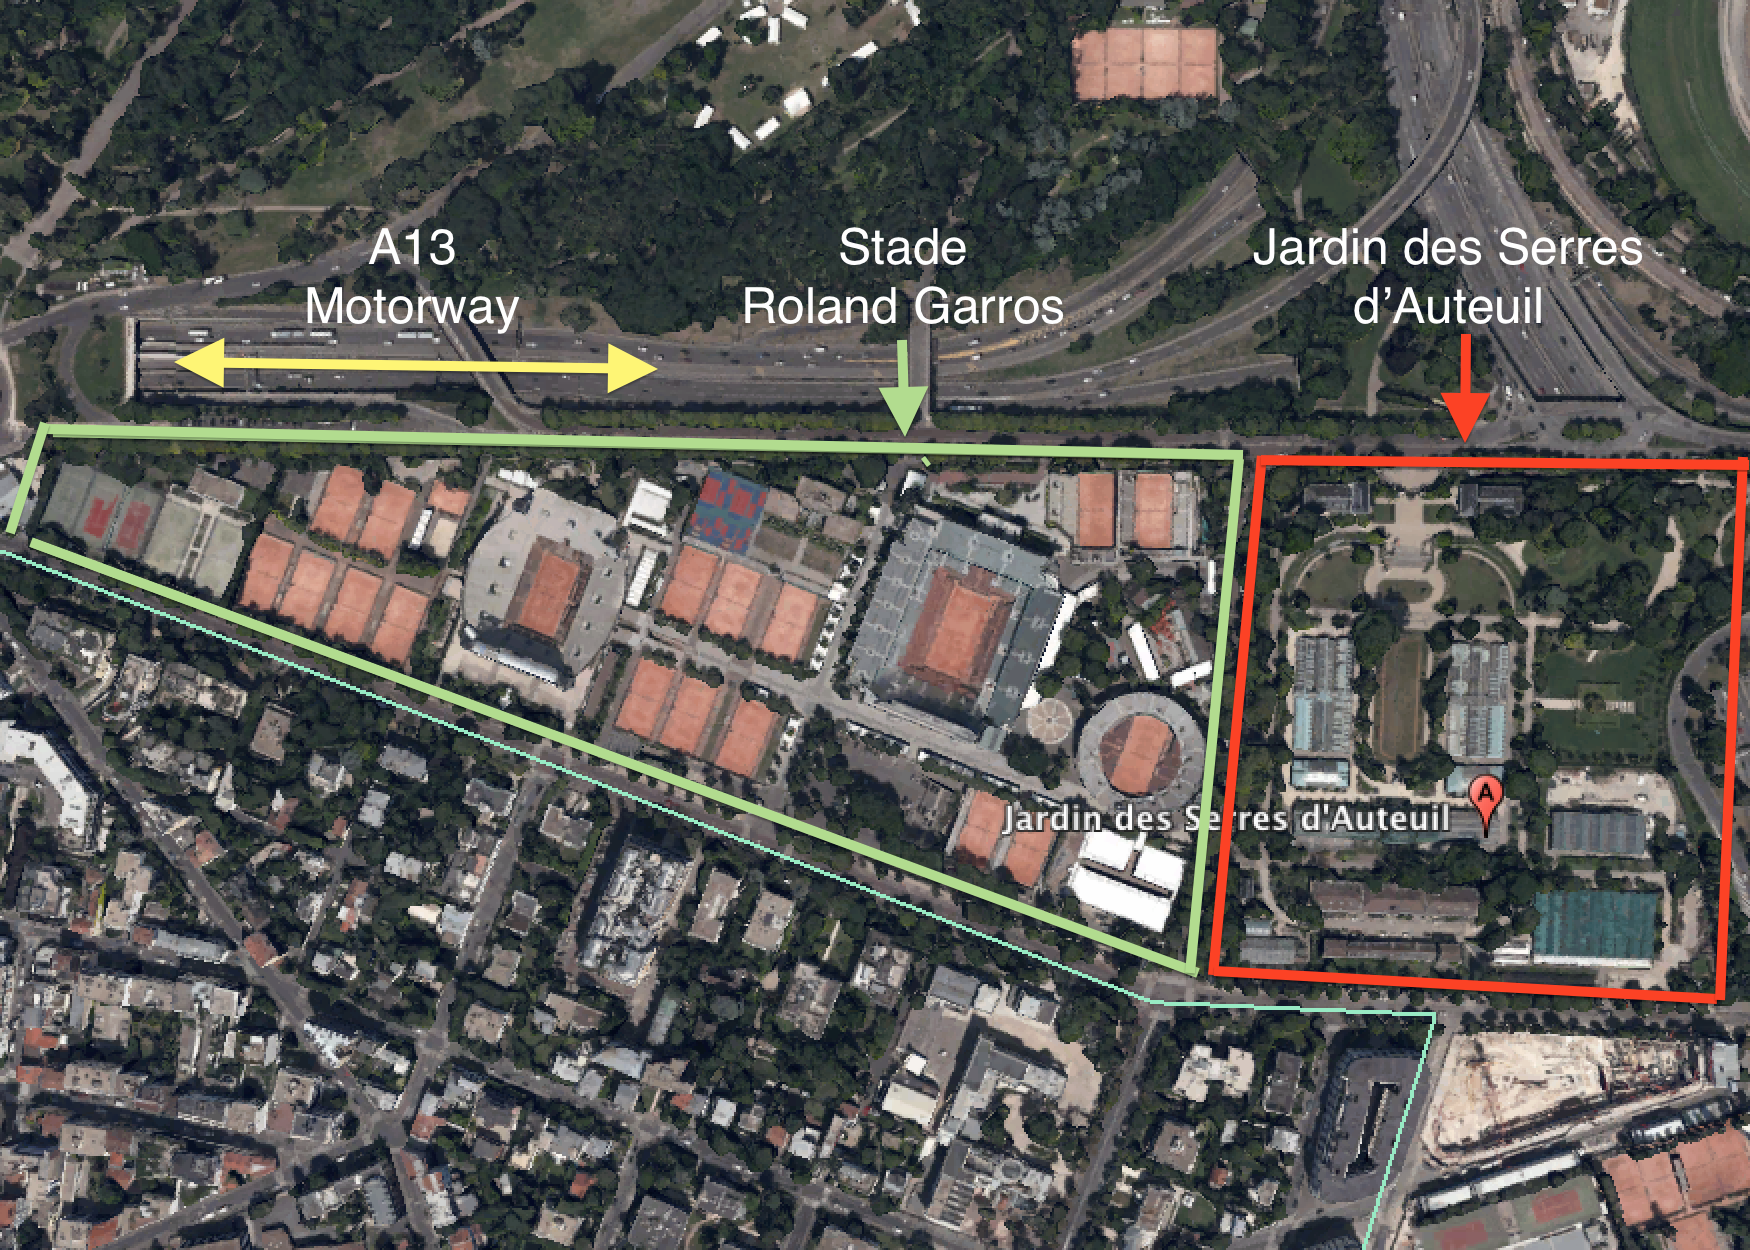 Roland Garros Location In Paris Map.Would Inevitably Change As A Result Well This Is